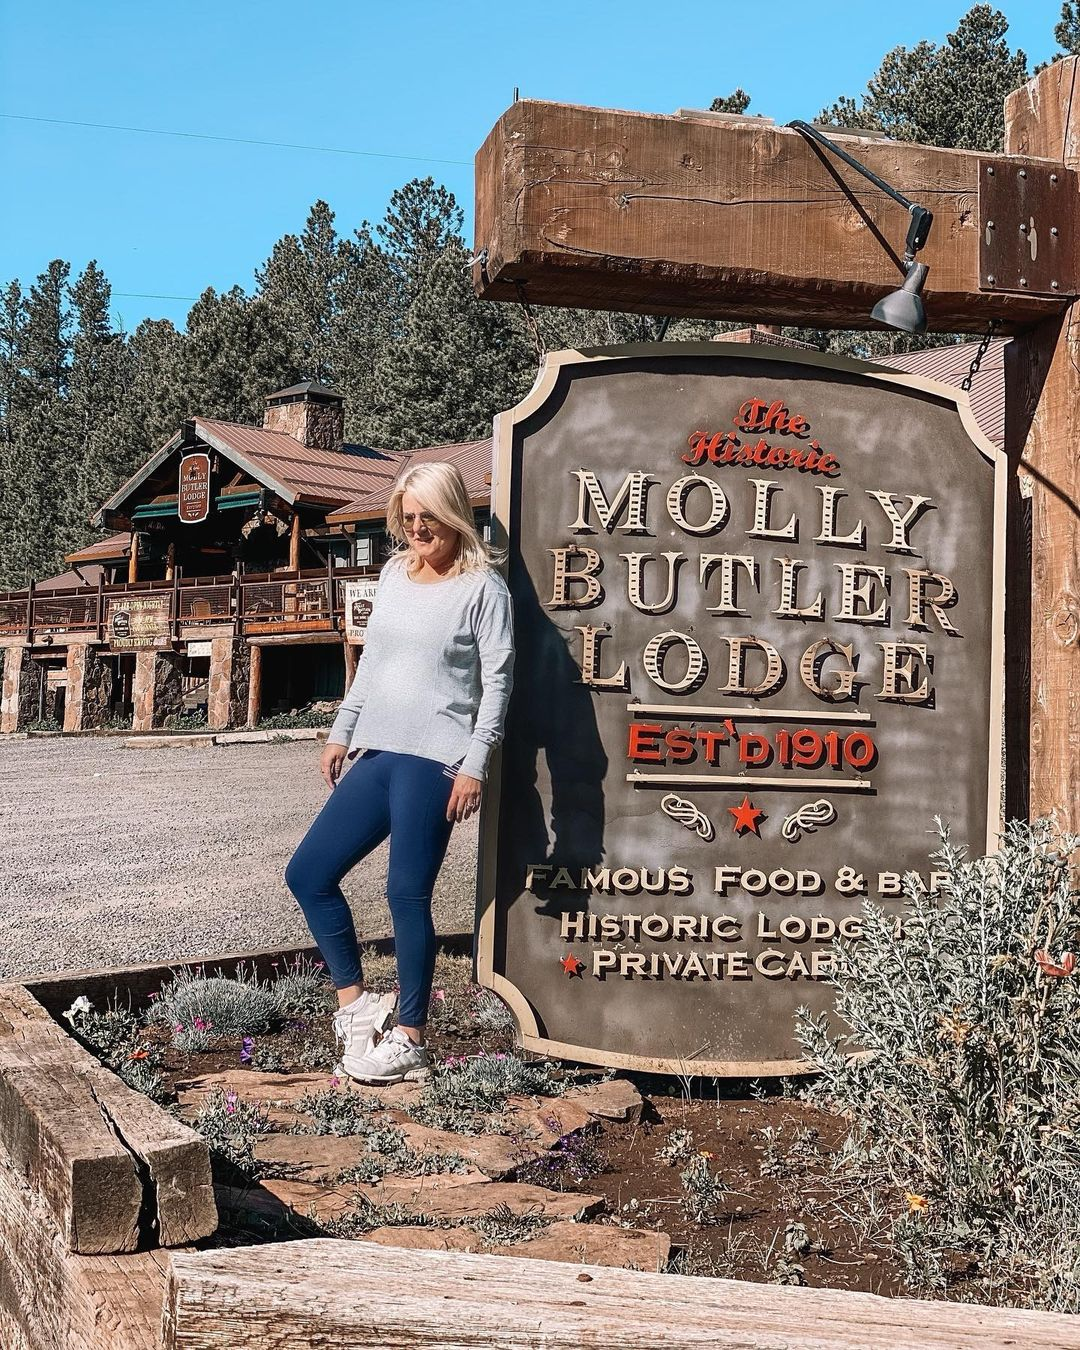 Molly Butler Lodge az